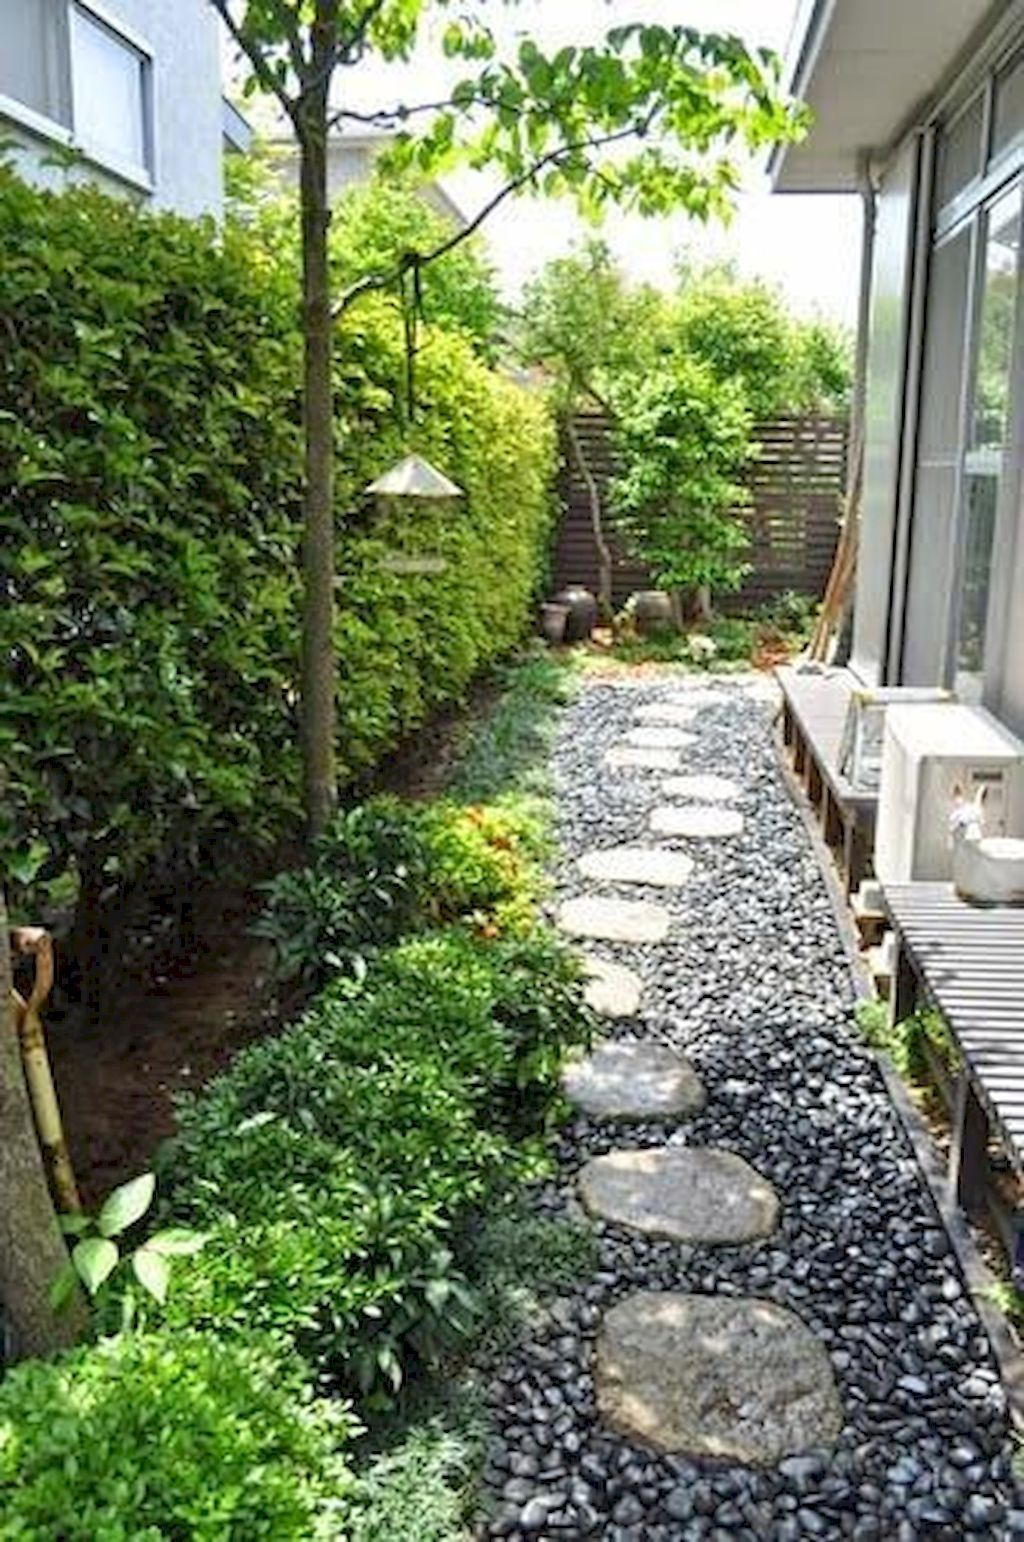 Brilliant Gardening Design Ideas You Need To Know In 202037